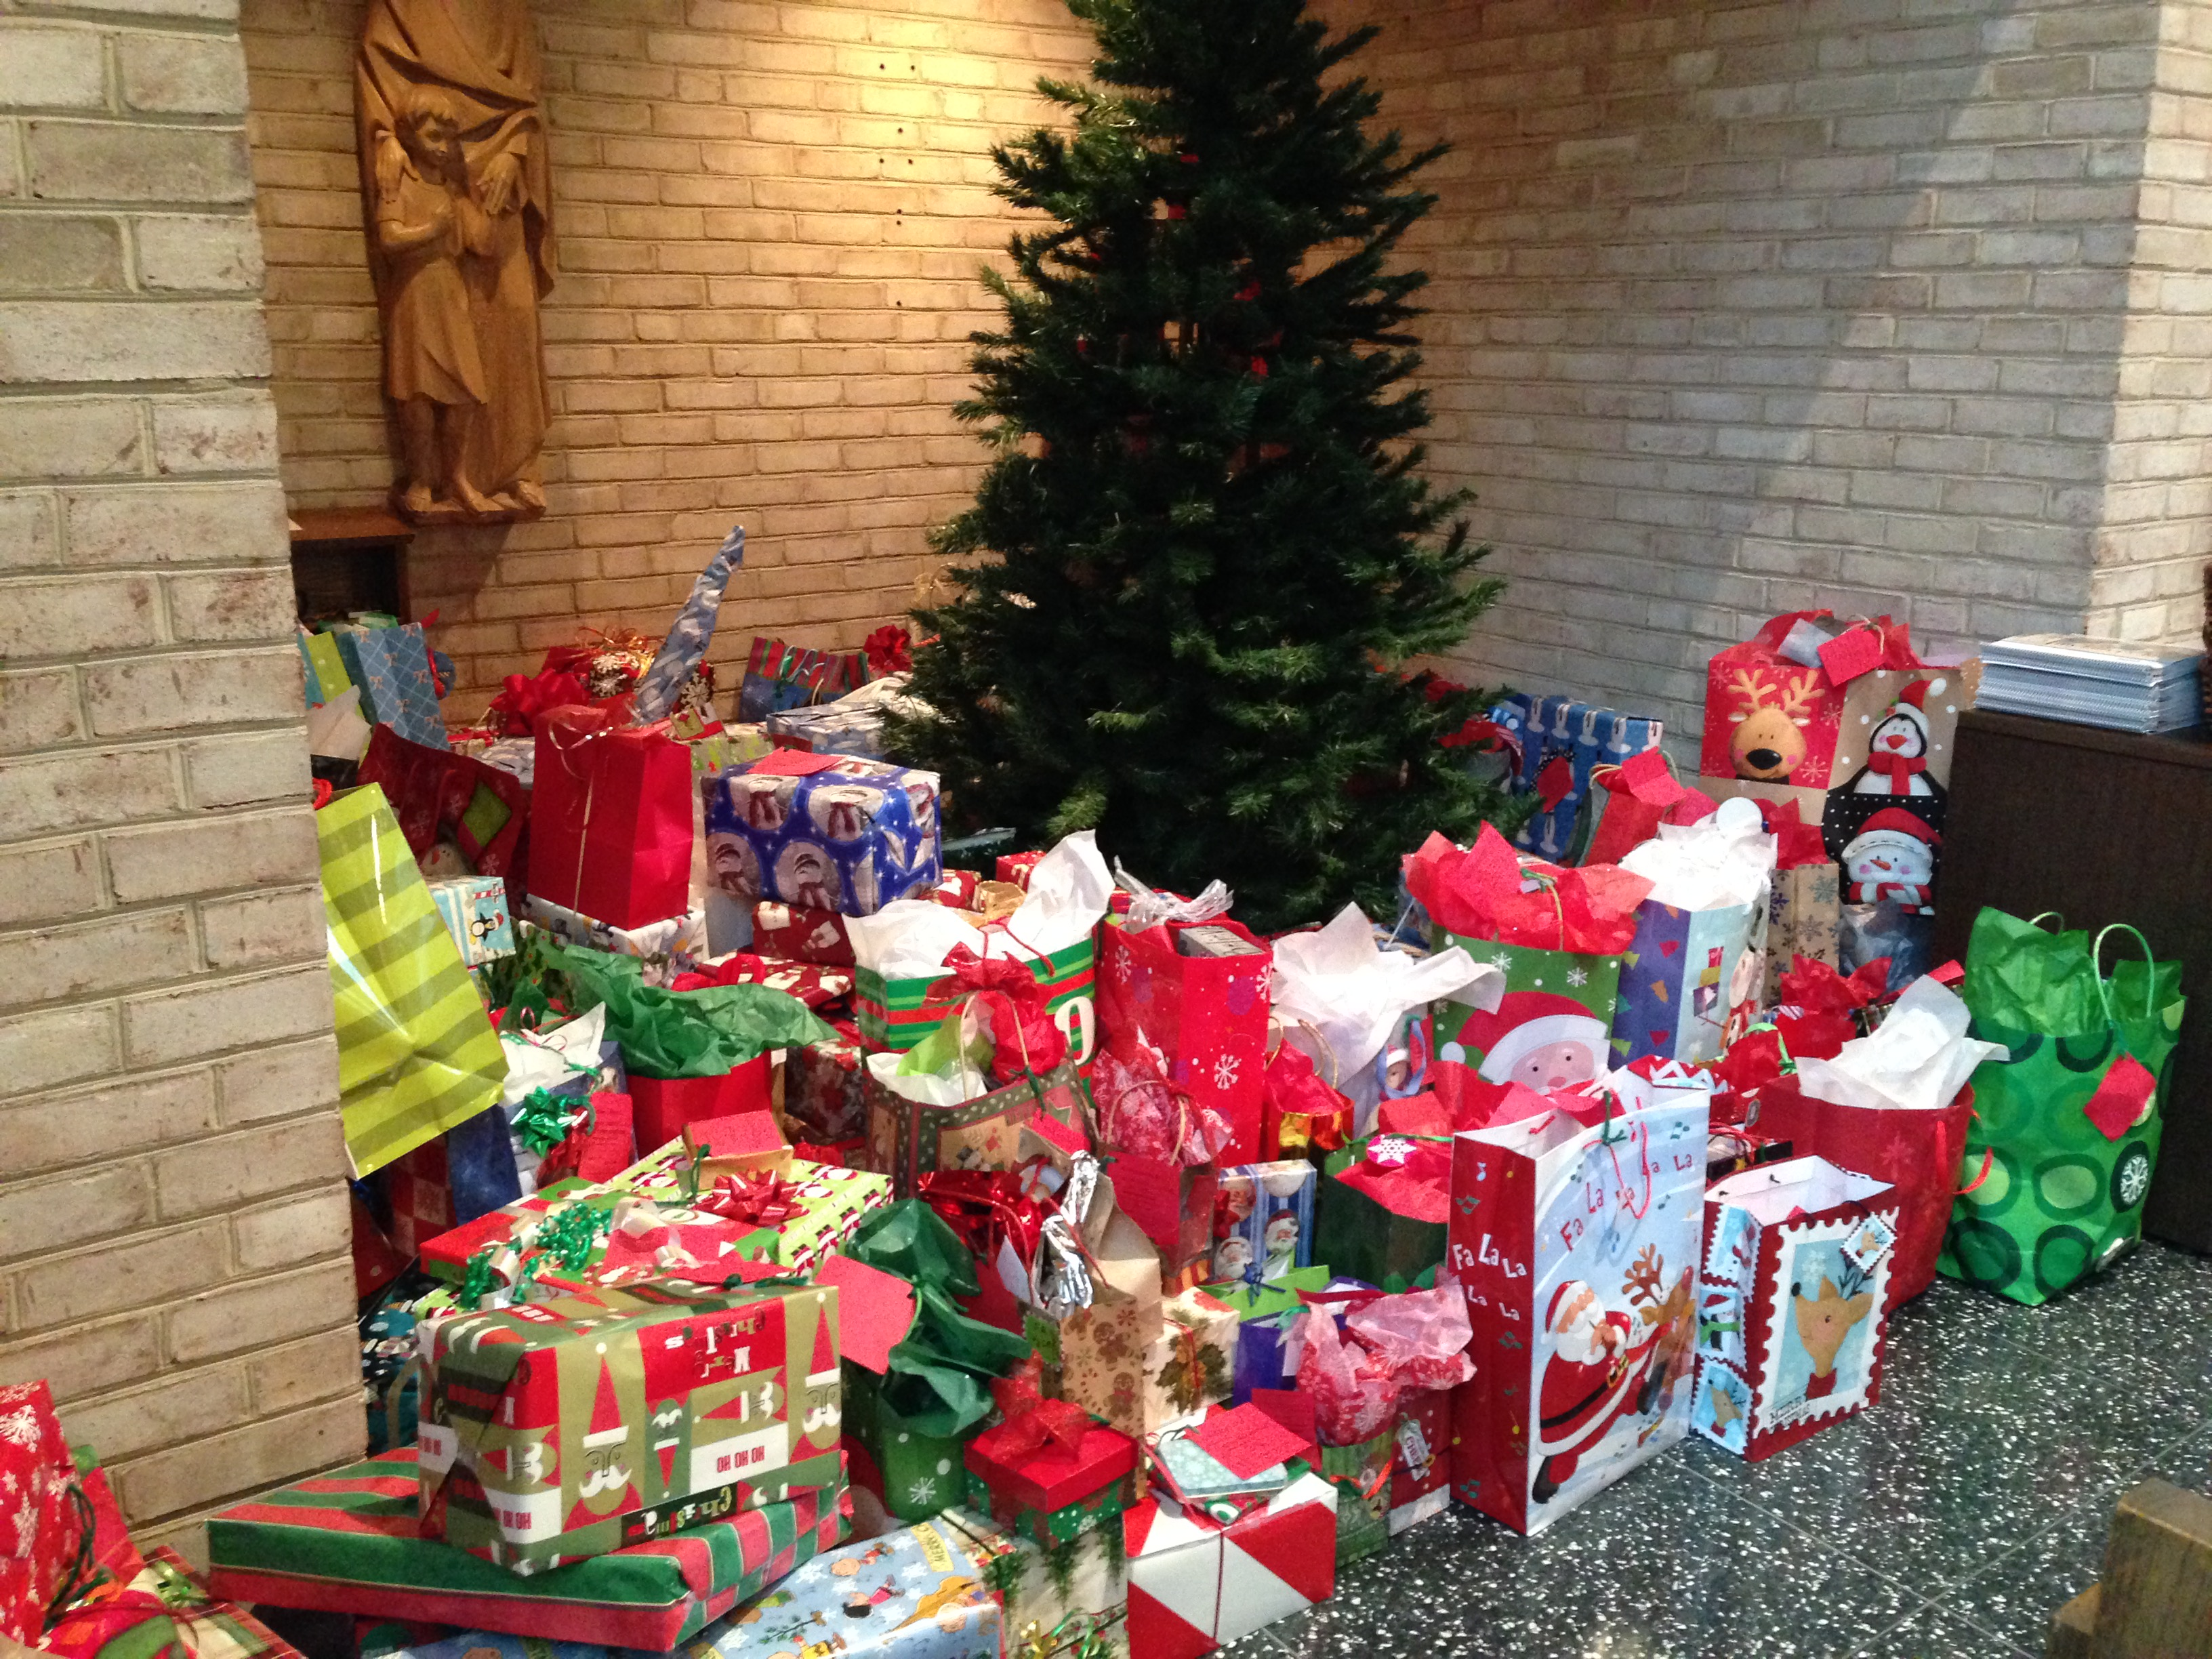 St Ann Christmas Giving Tree gifts due Sunday, Dec 15 at 12:30